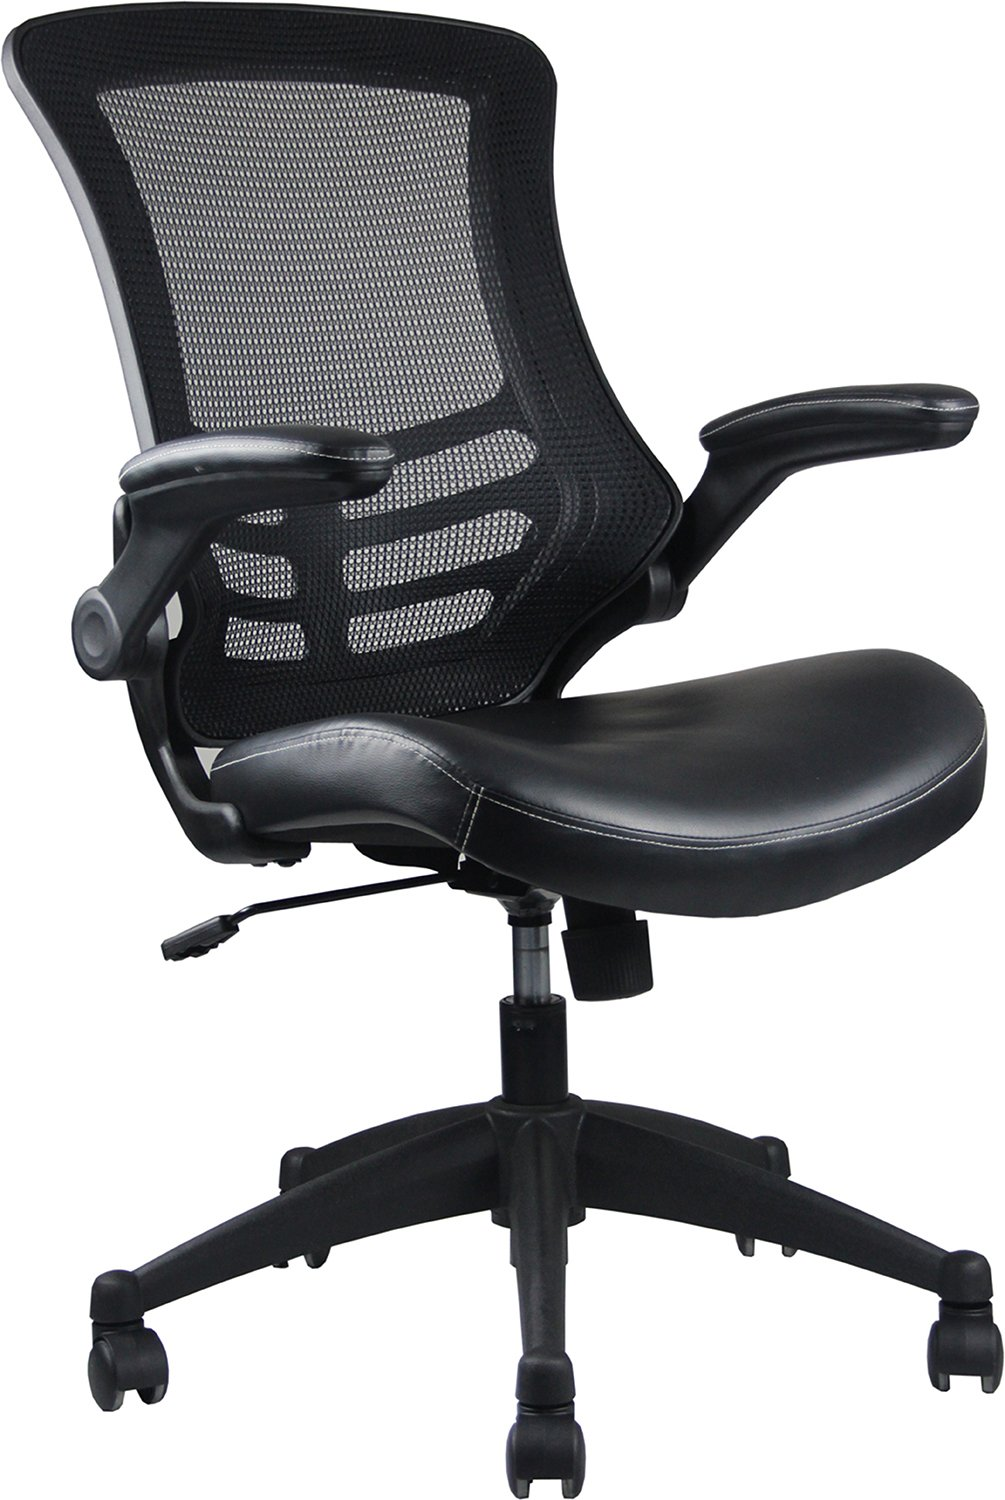 Stylish Mid Back Office Chair Adjustable